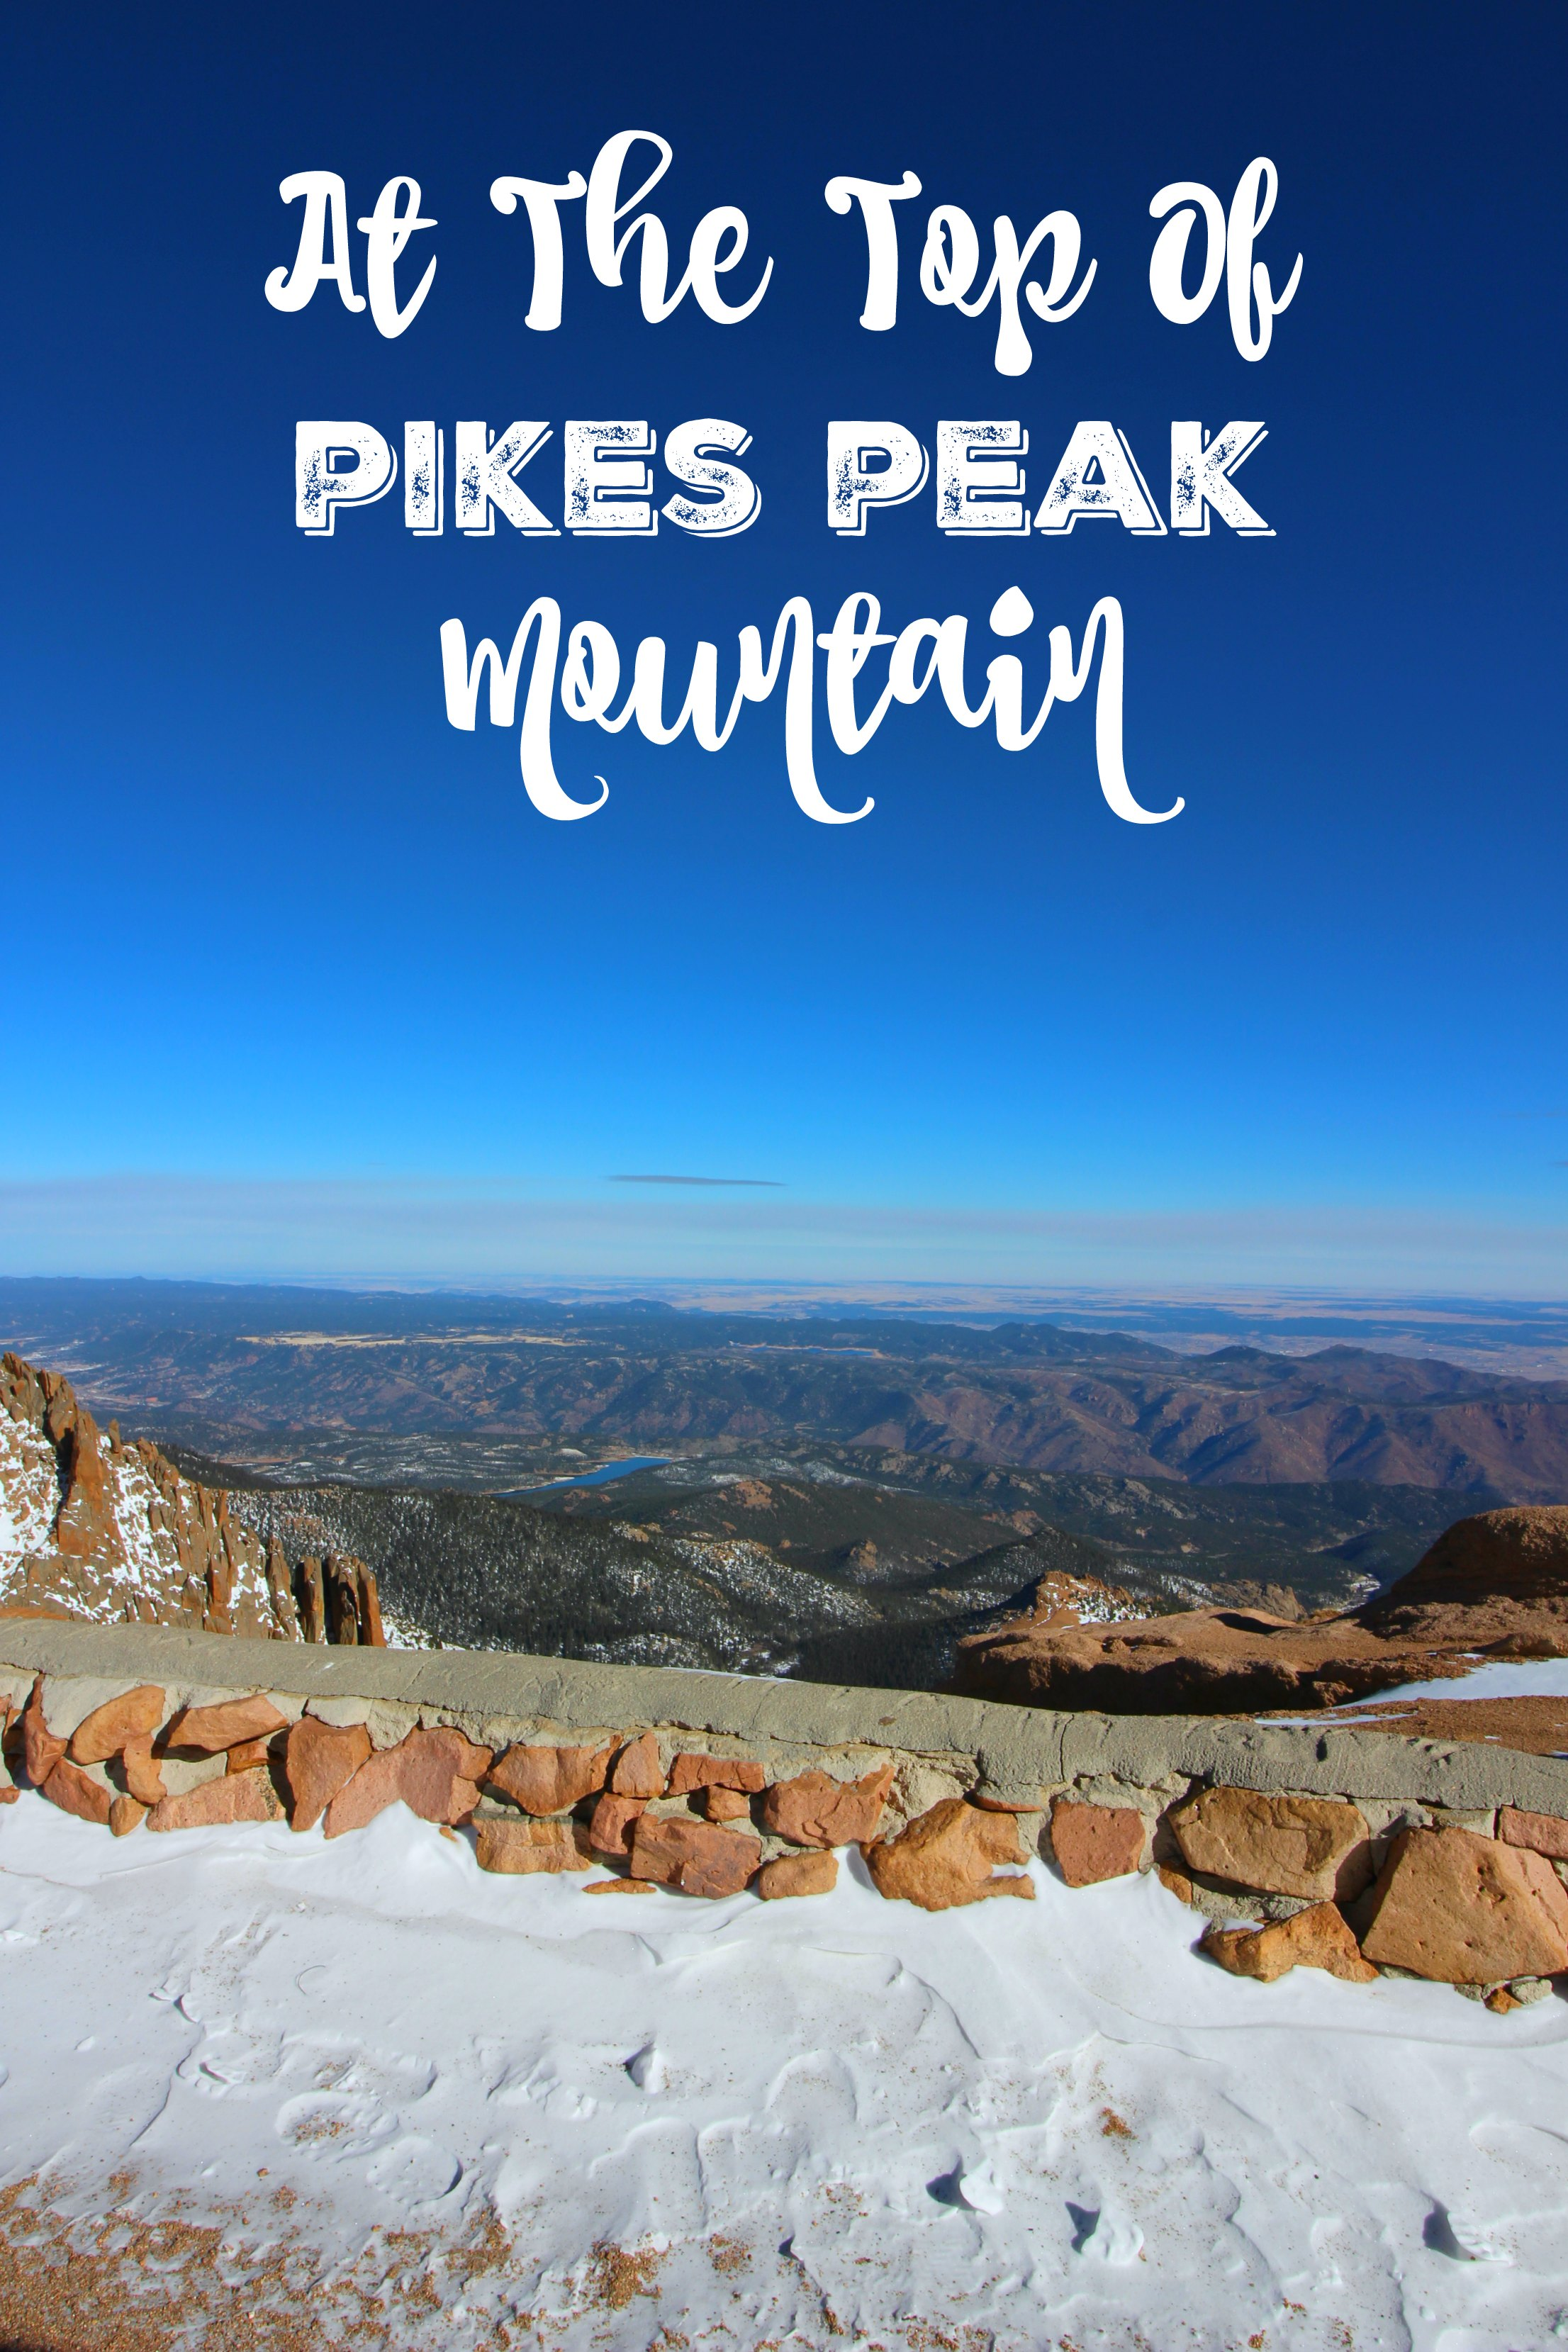 at-the-top-of-pikes-peak-mounting